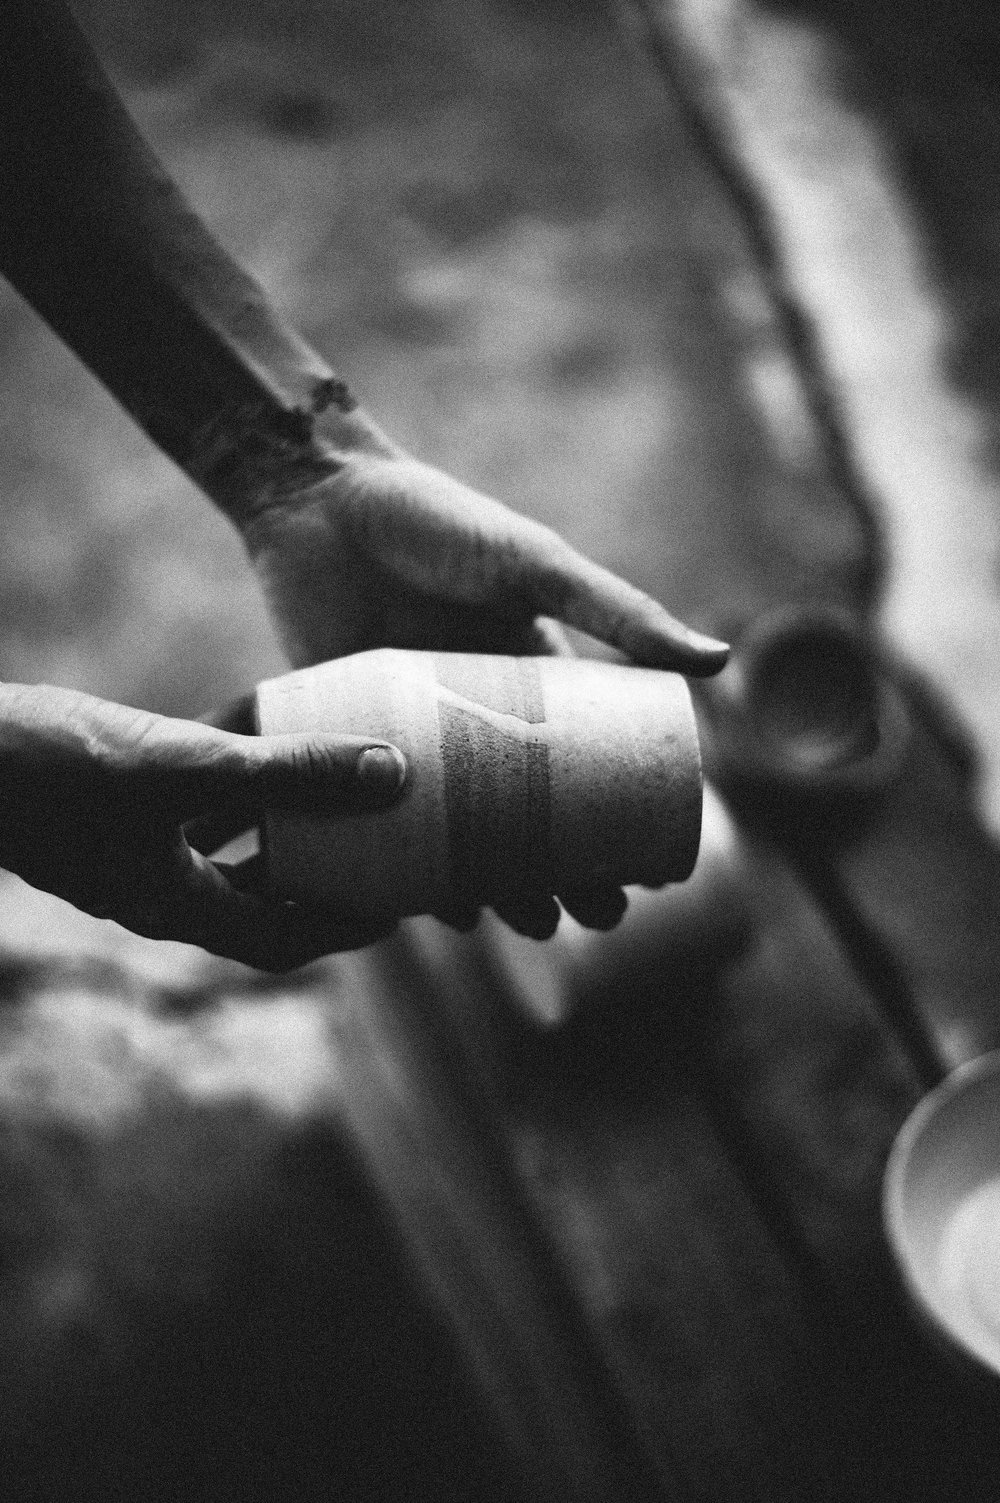 P R O C E S S   - working with clay is like therapy. when we sit at the wheel to throw, we turn inward and become very focused on the piece at hand. its a sort of forced mindfullness I welcome in my everyday life. the creation process is extremely involved and equally as rewarding. I start with high-fire clay, stoneware and porcelain, then marble them together just a bit to give pieces a spiral touch. the clay is then